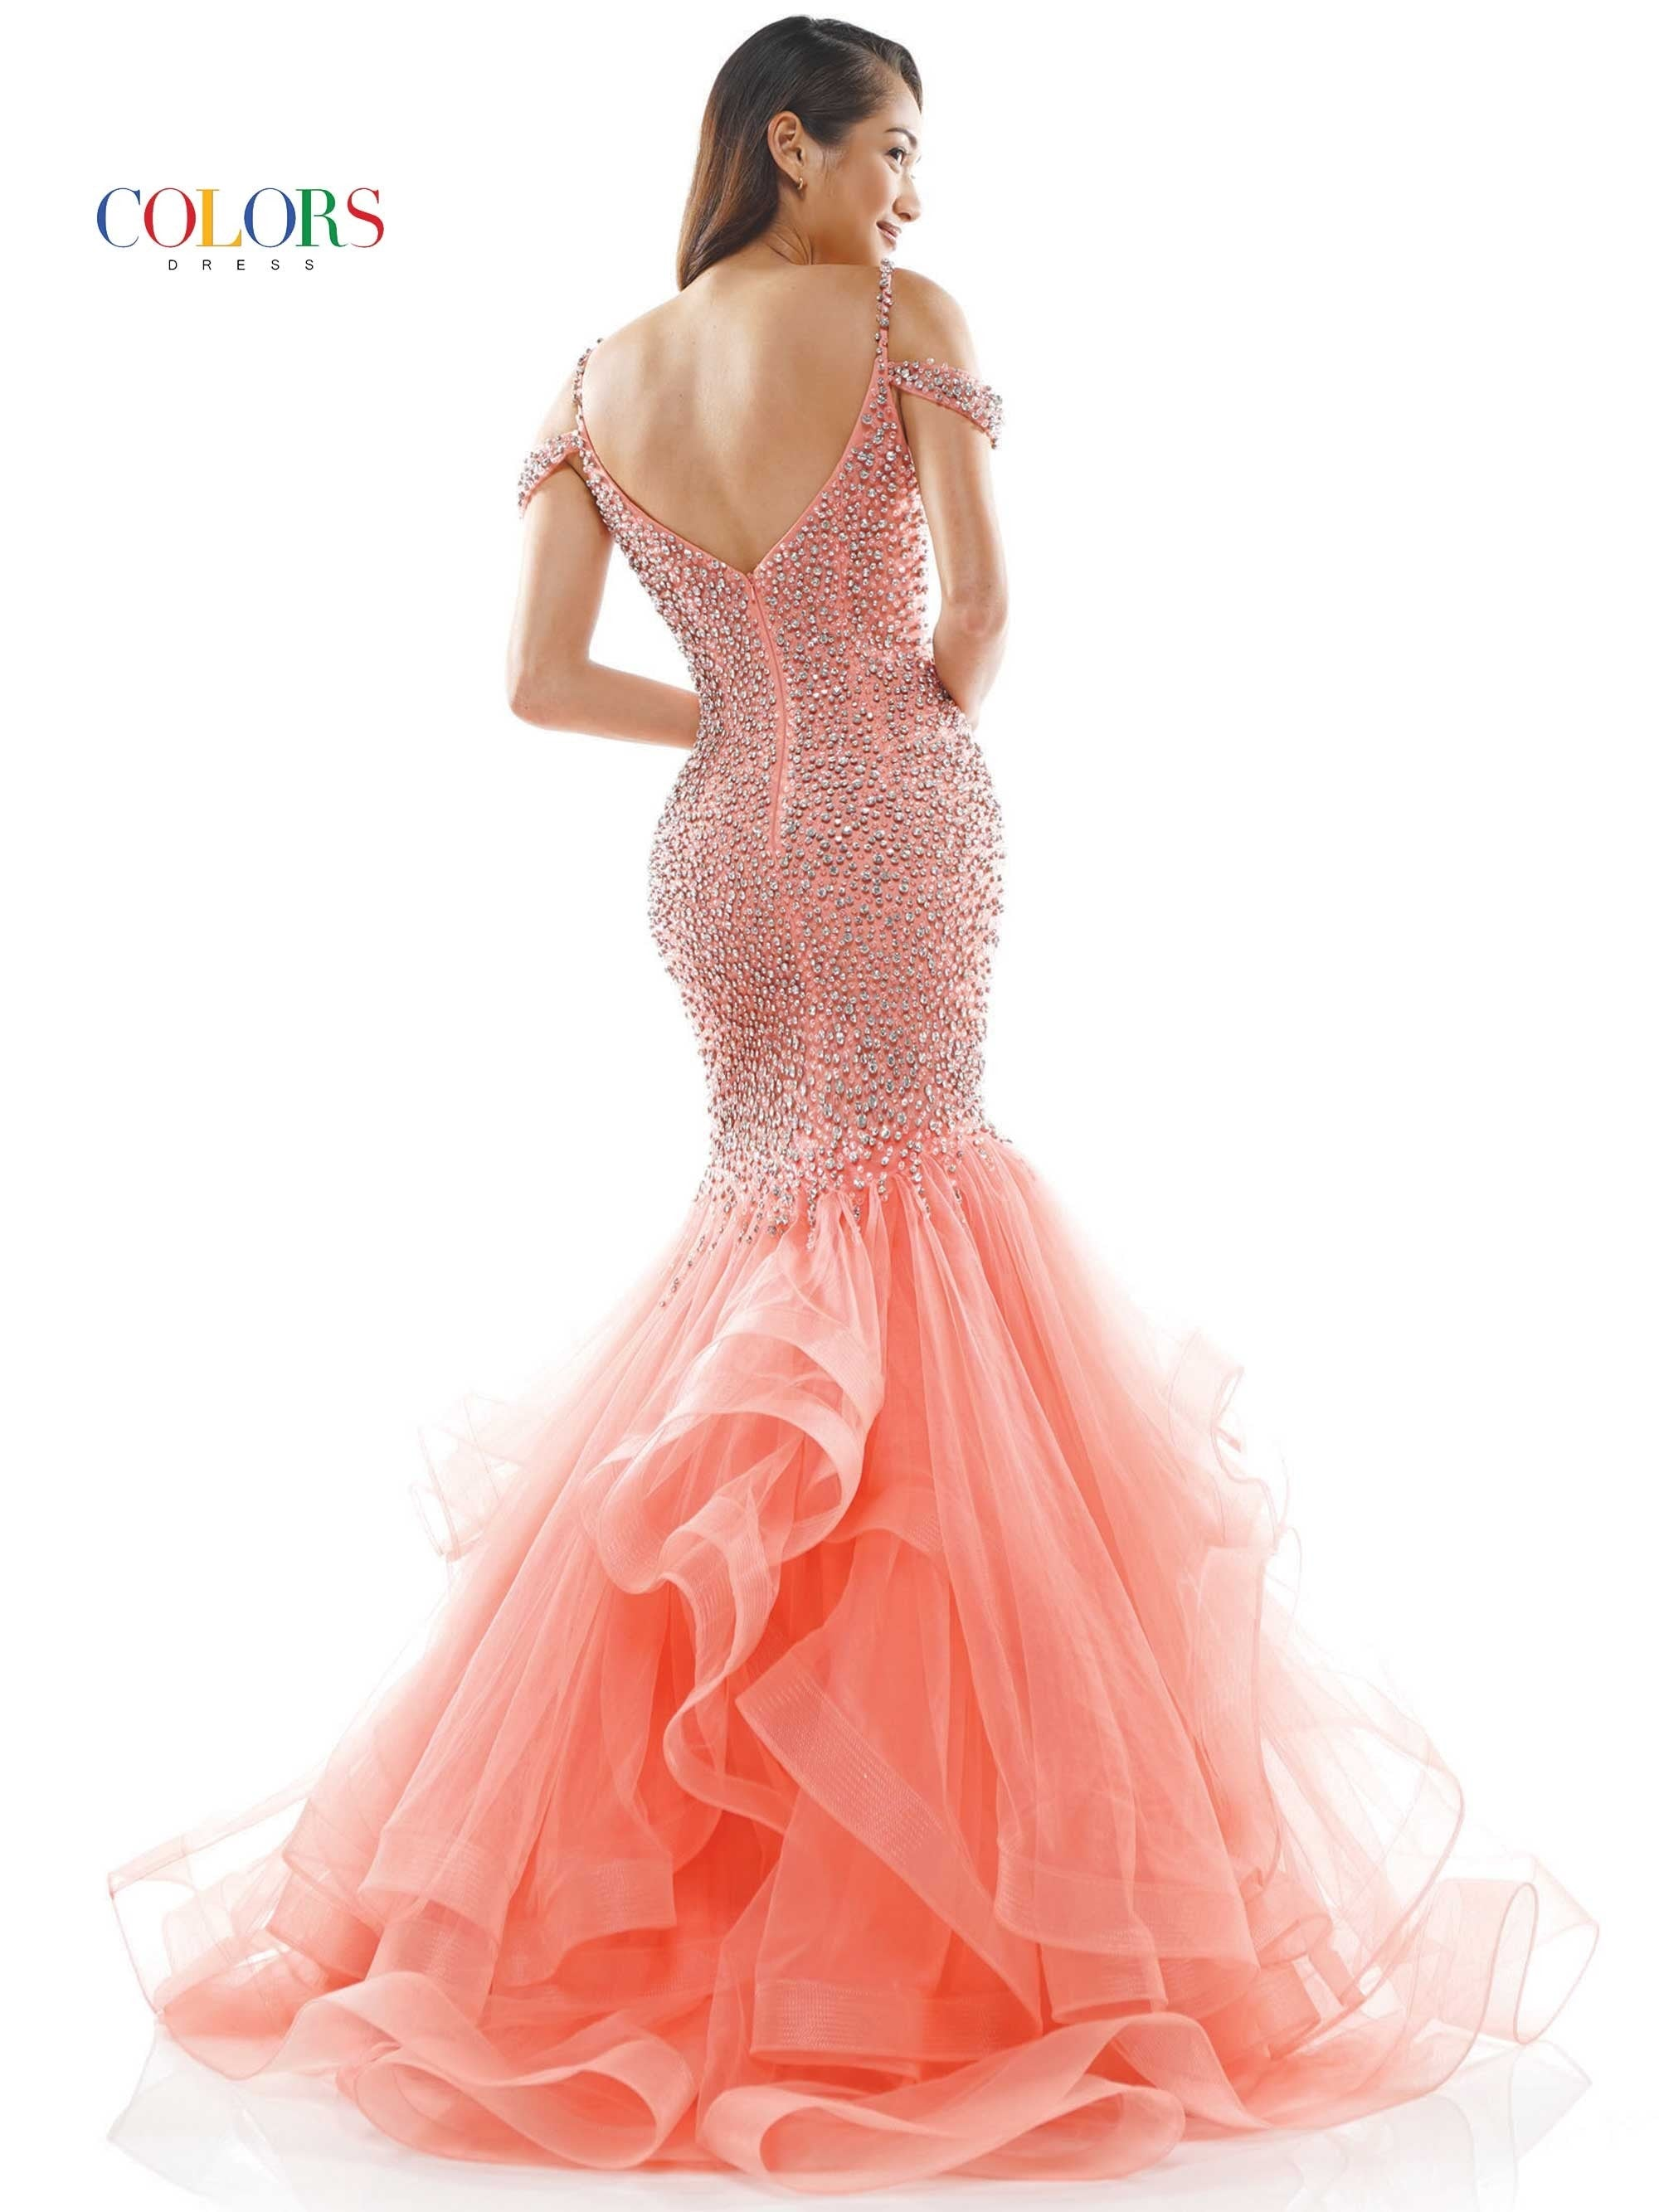 J126 - fully beaded mermaid dress with cascade ruffle skirt, plunged neckline with beaded straps